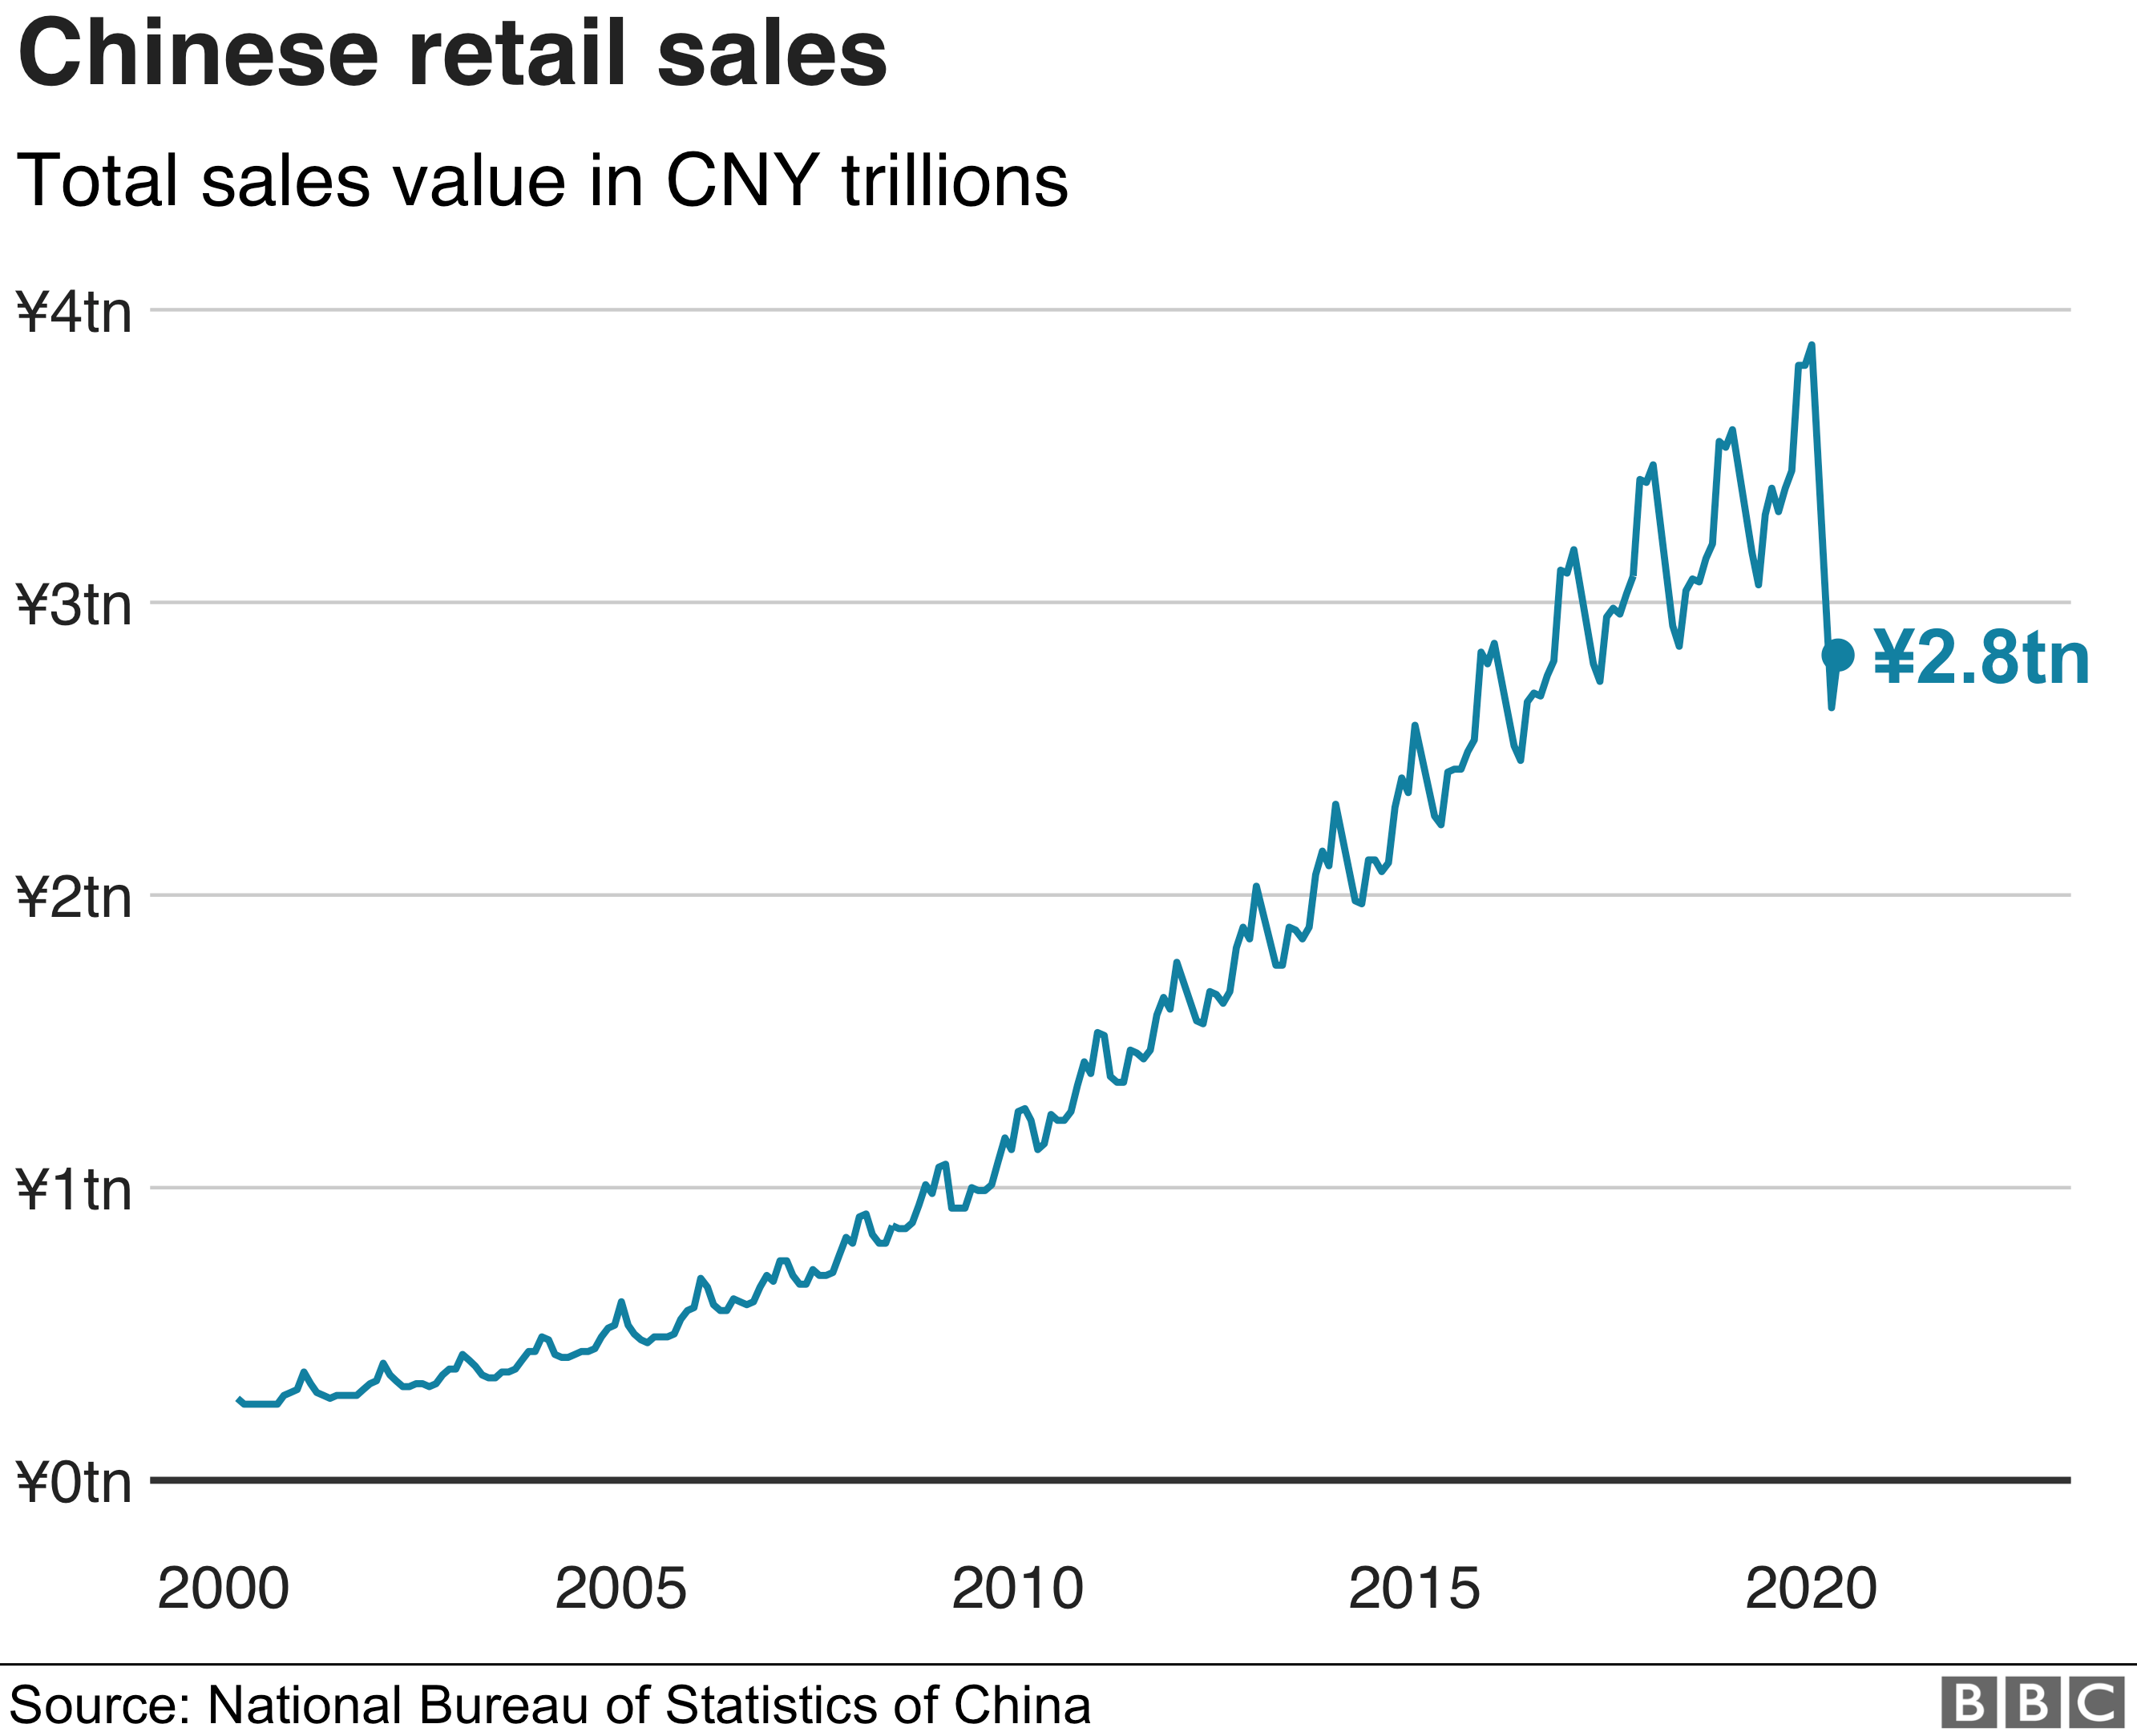 Chinese retail sales graph